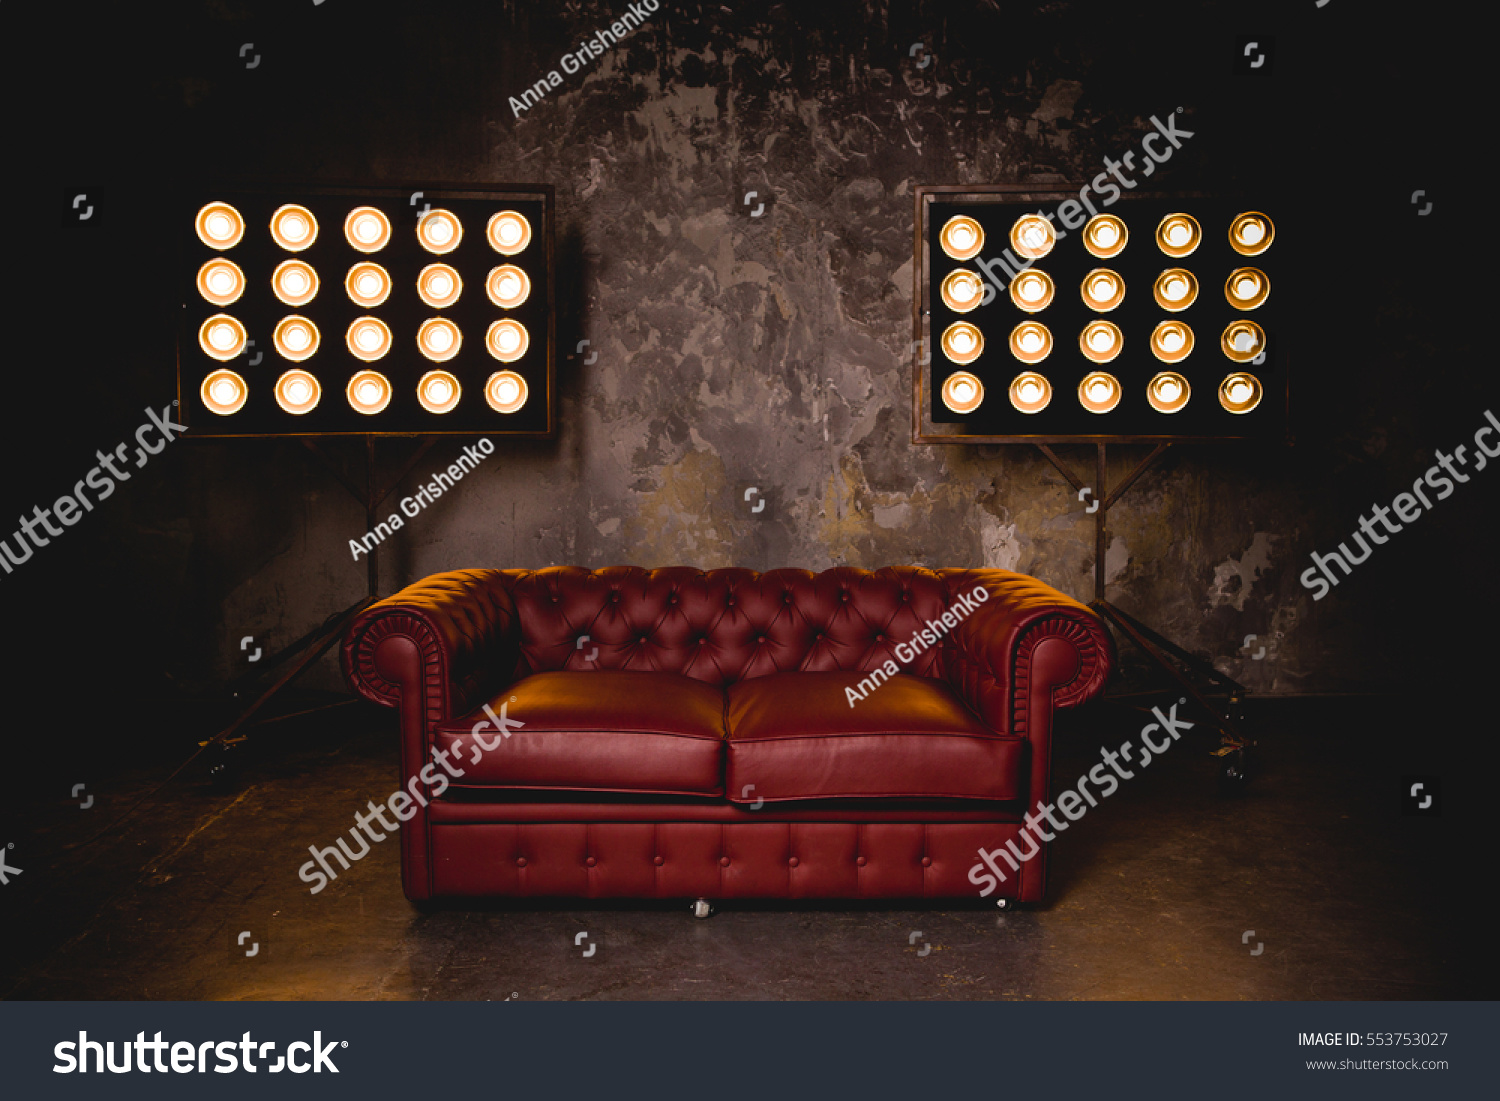 lighting for dark rooms. Lighting For Dark Rooms. Leather Couch In A Room On The Background Of Bright Rooms 2